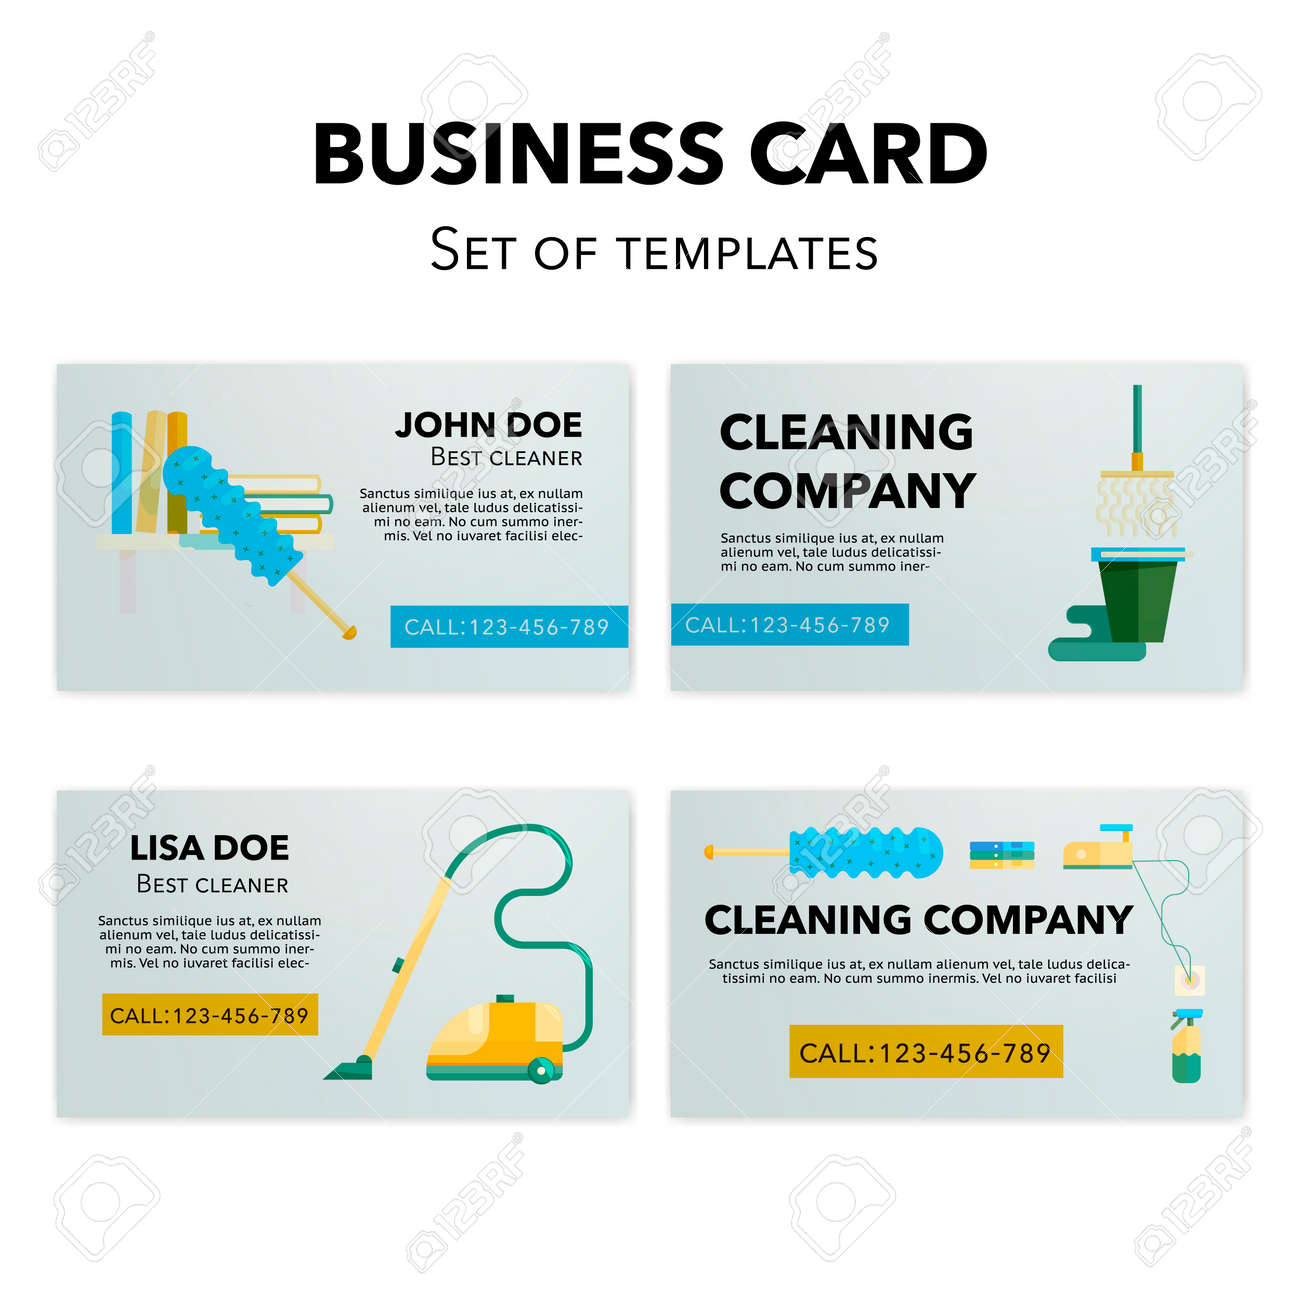 Cleaning business cards templates set flat cleaning appliances cleaning business cards templates set flat cleaning appliances concepts illustration stock vector 68695316 accmission